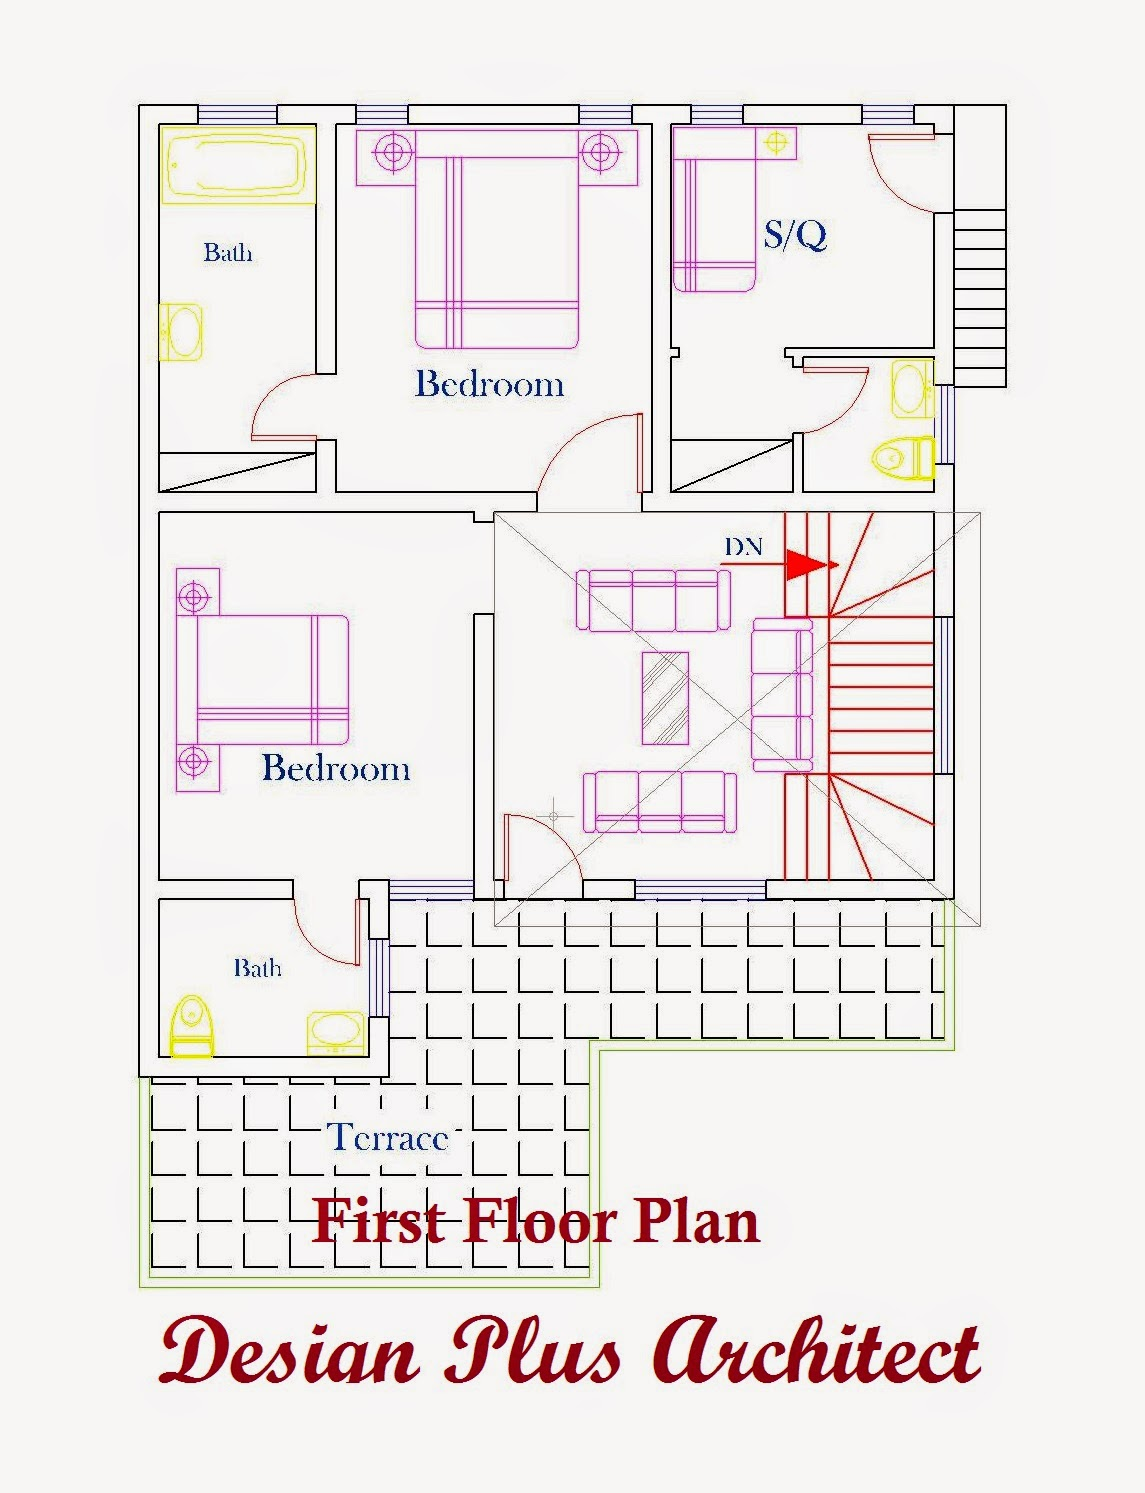 Home Design Plans In Pakistan Home Plans In Pakistan